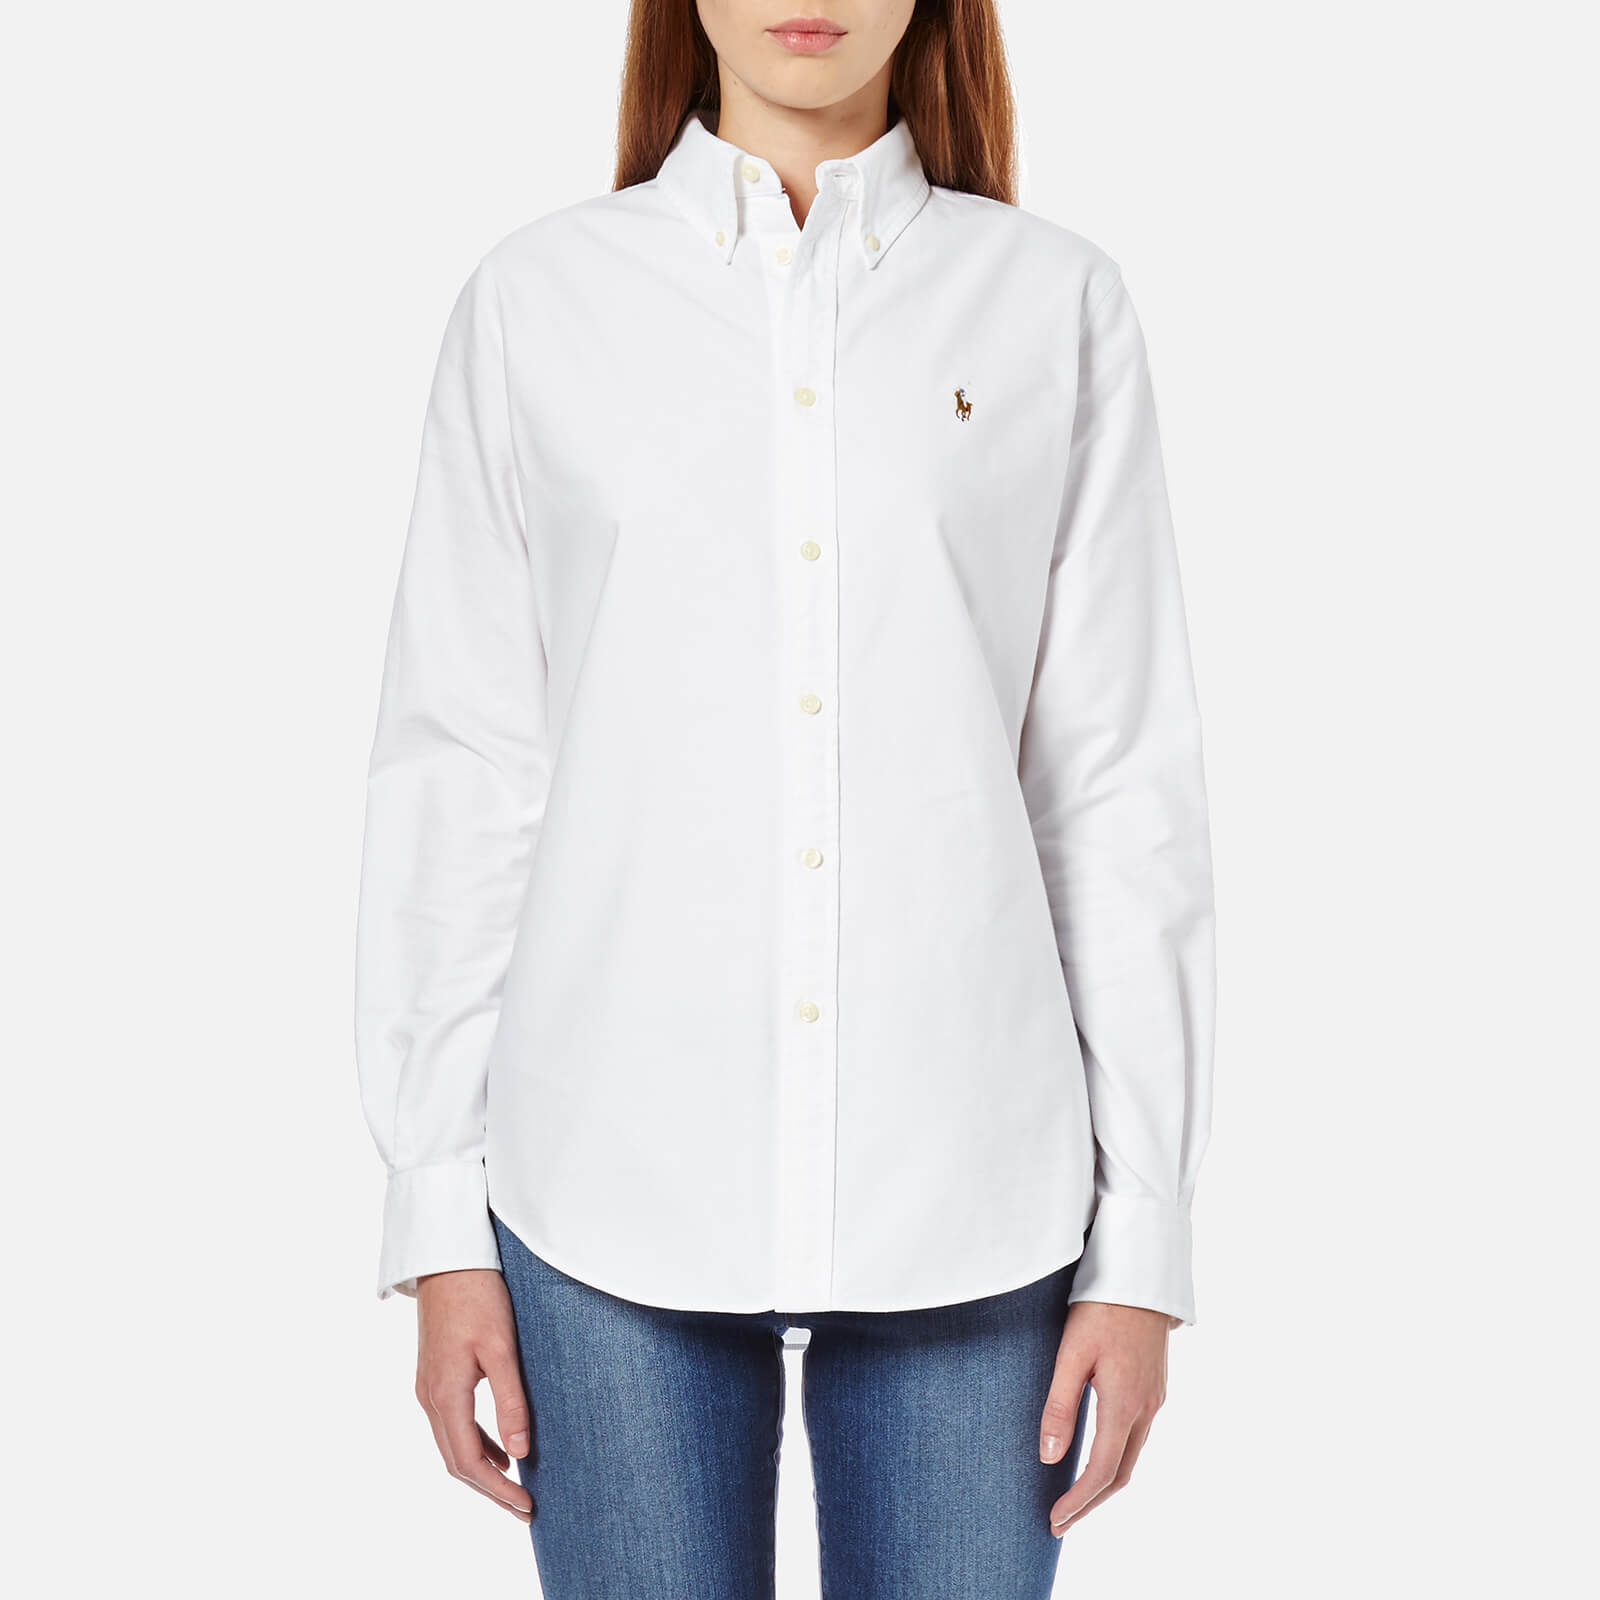 30ec3db36e Polo Ralph Lauren Women's, Polo Shirts, T- Shirts, Sweaters, Hoodies ...